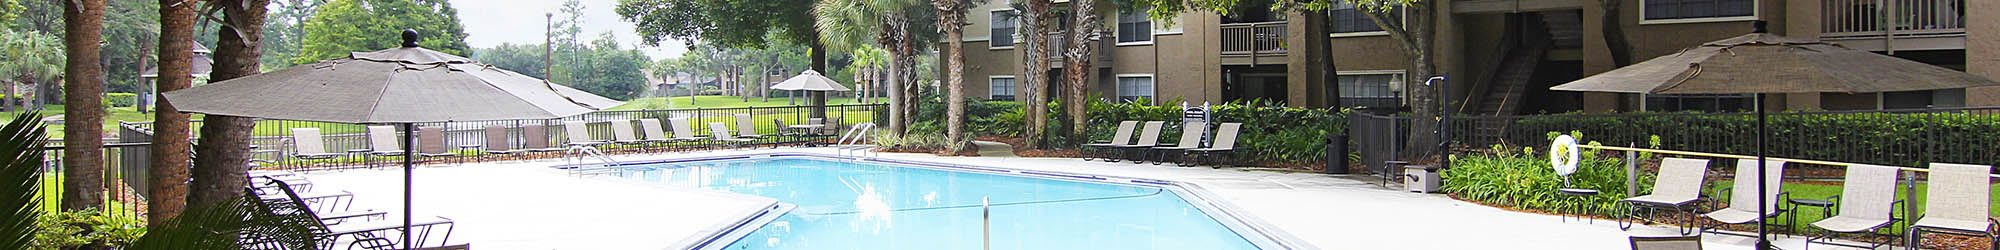 1, 2 & 3 bedrooms offered at apartments in Jacksonville